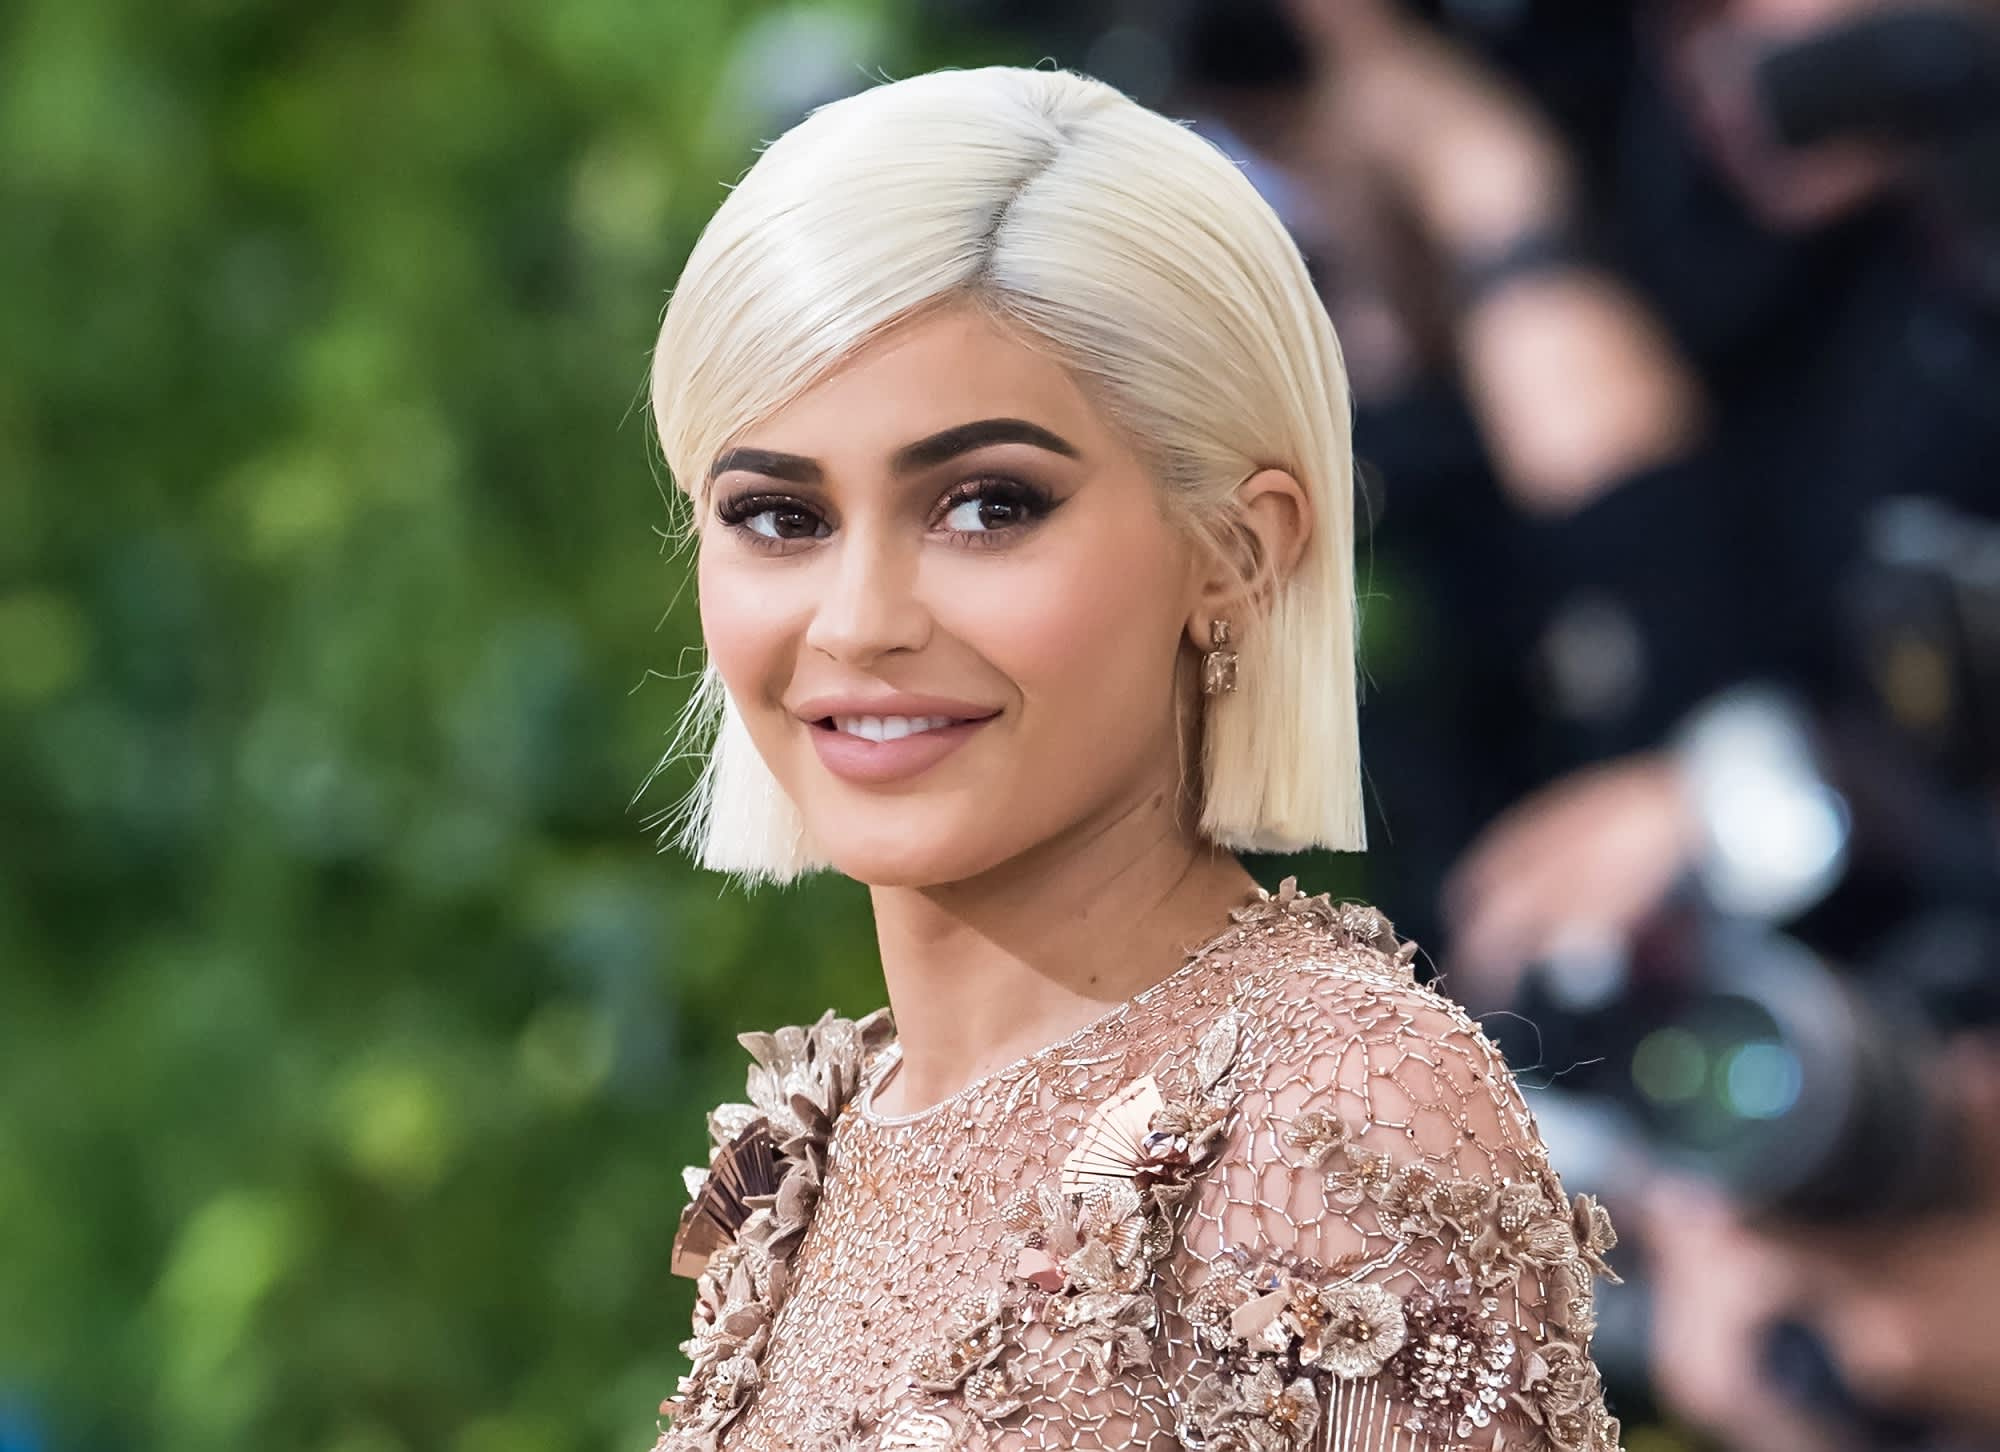 Kylie Jenner may soon be the world's youngest self-made